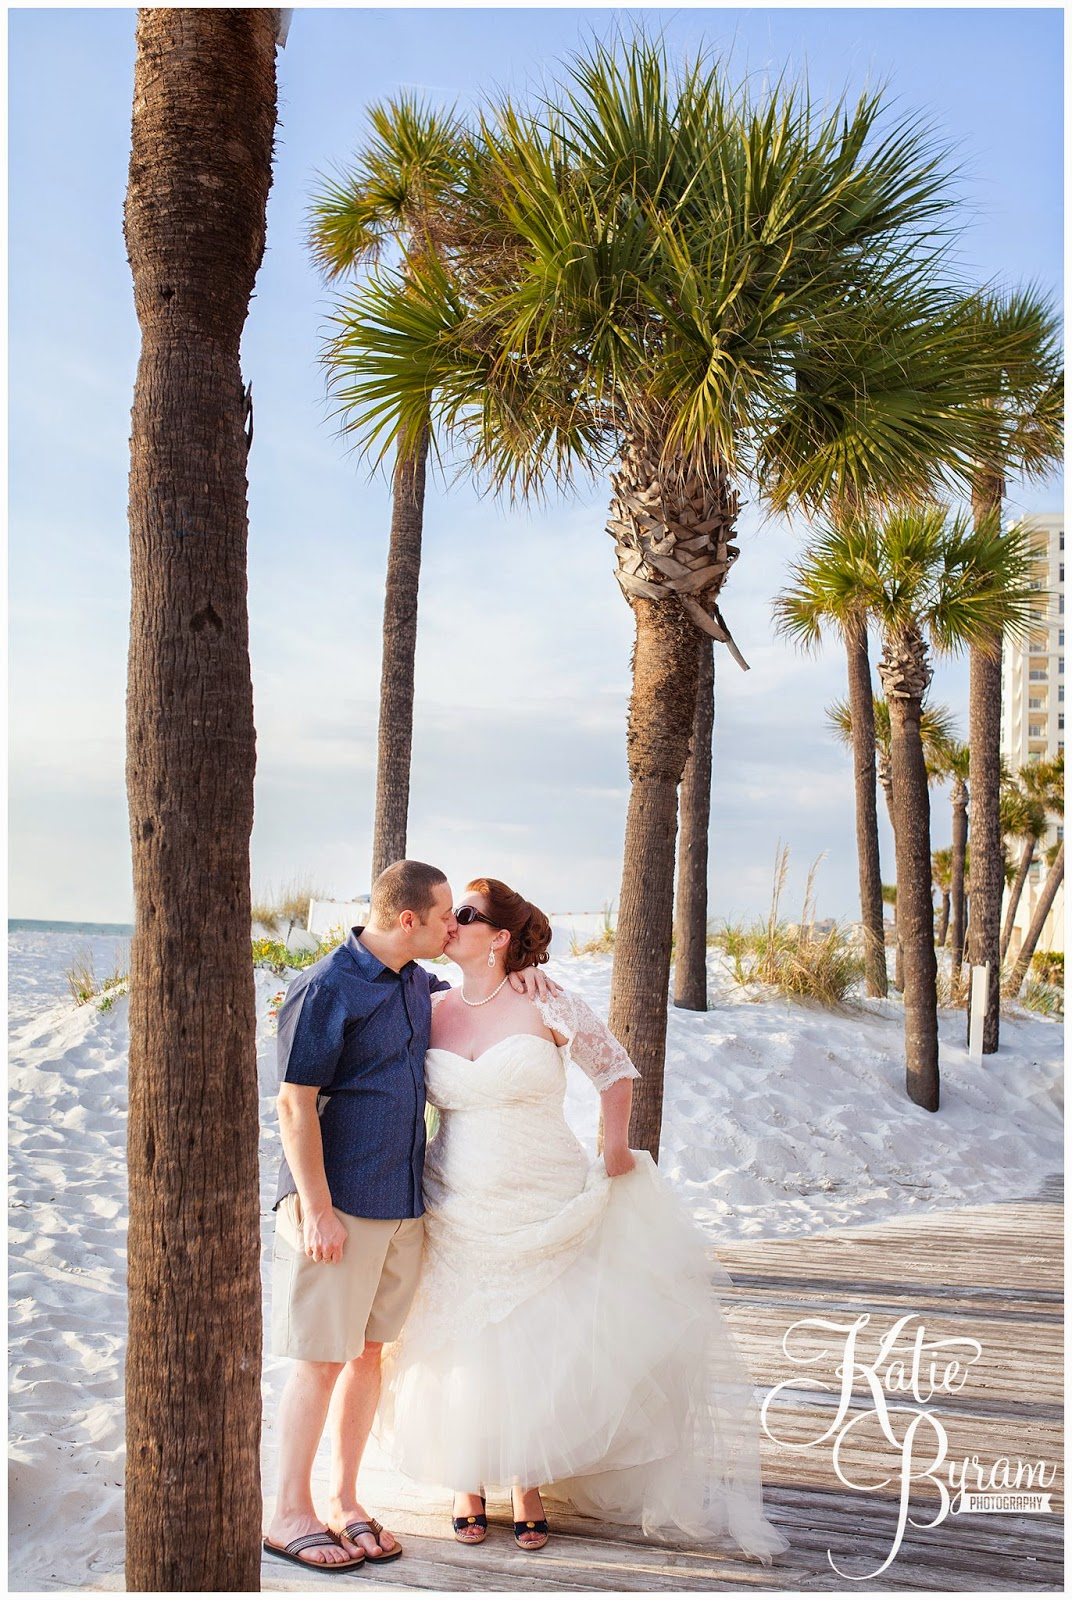 katie byram photography, nautical wedding, beach wedding theme, destination wedding, clearwater beach wedding, hilton clearwater beach wedding, katie byram photography, florida wedding